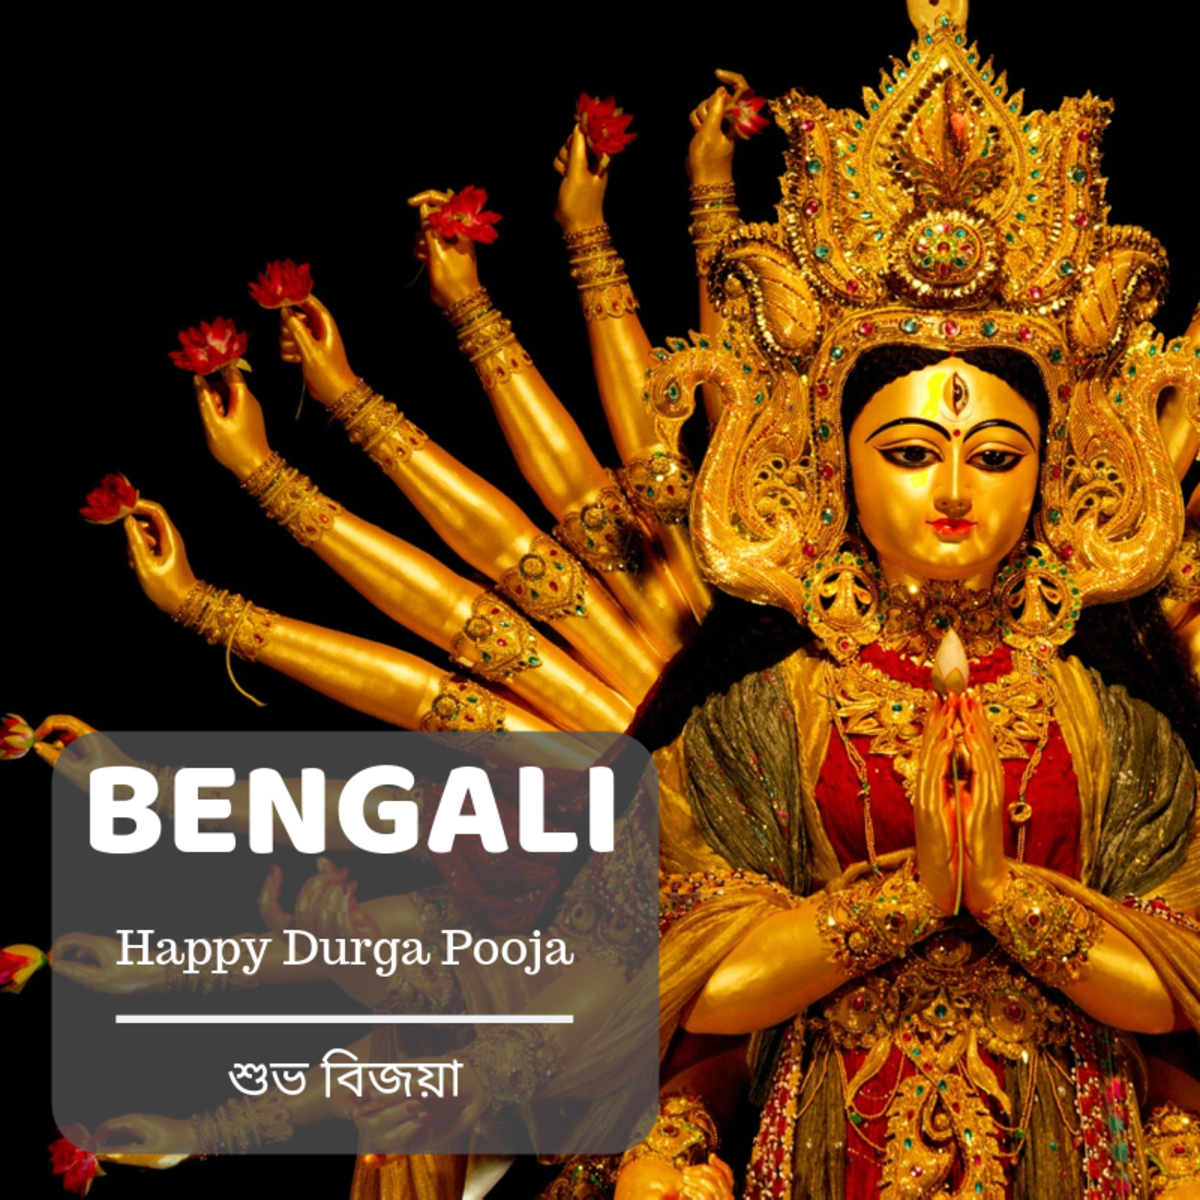 Happy Durga Pooja—শুভ বিজয়া